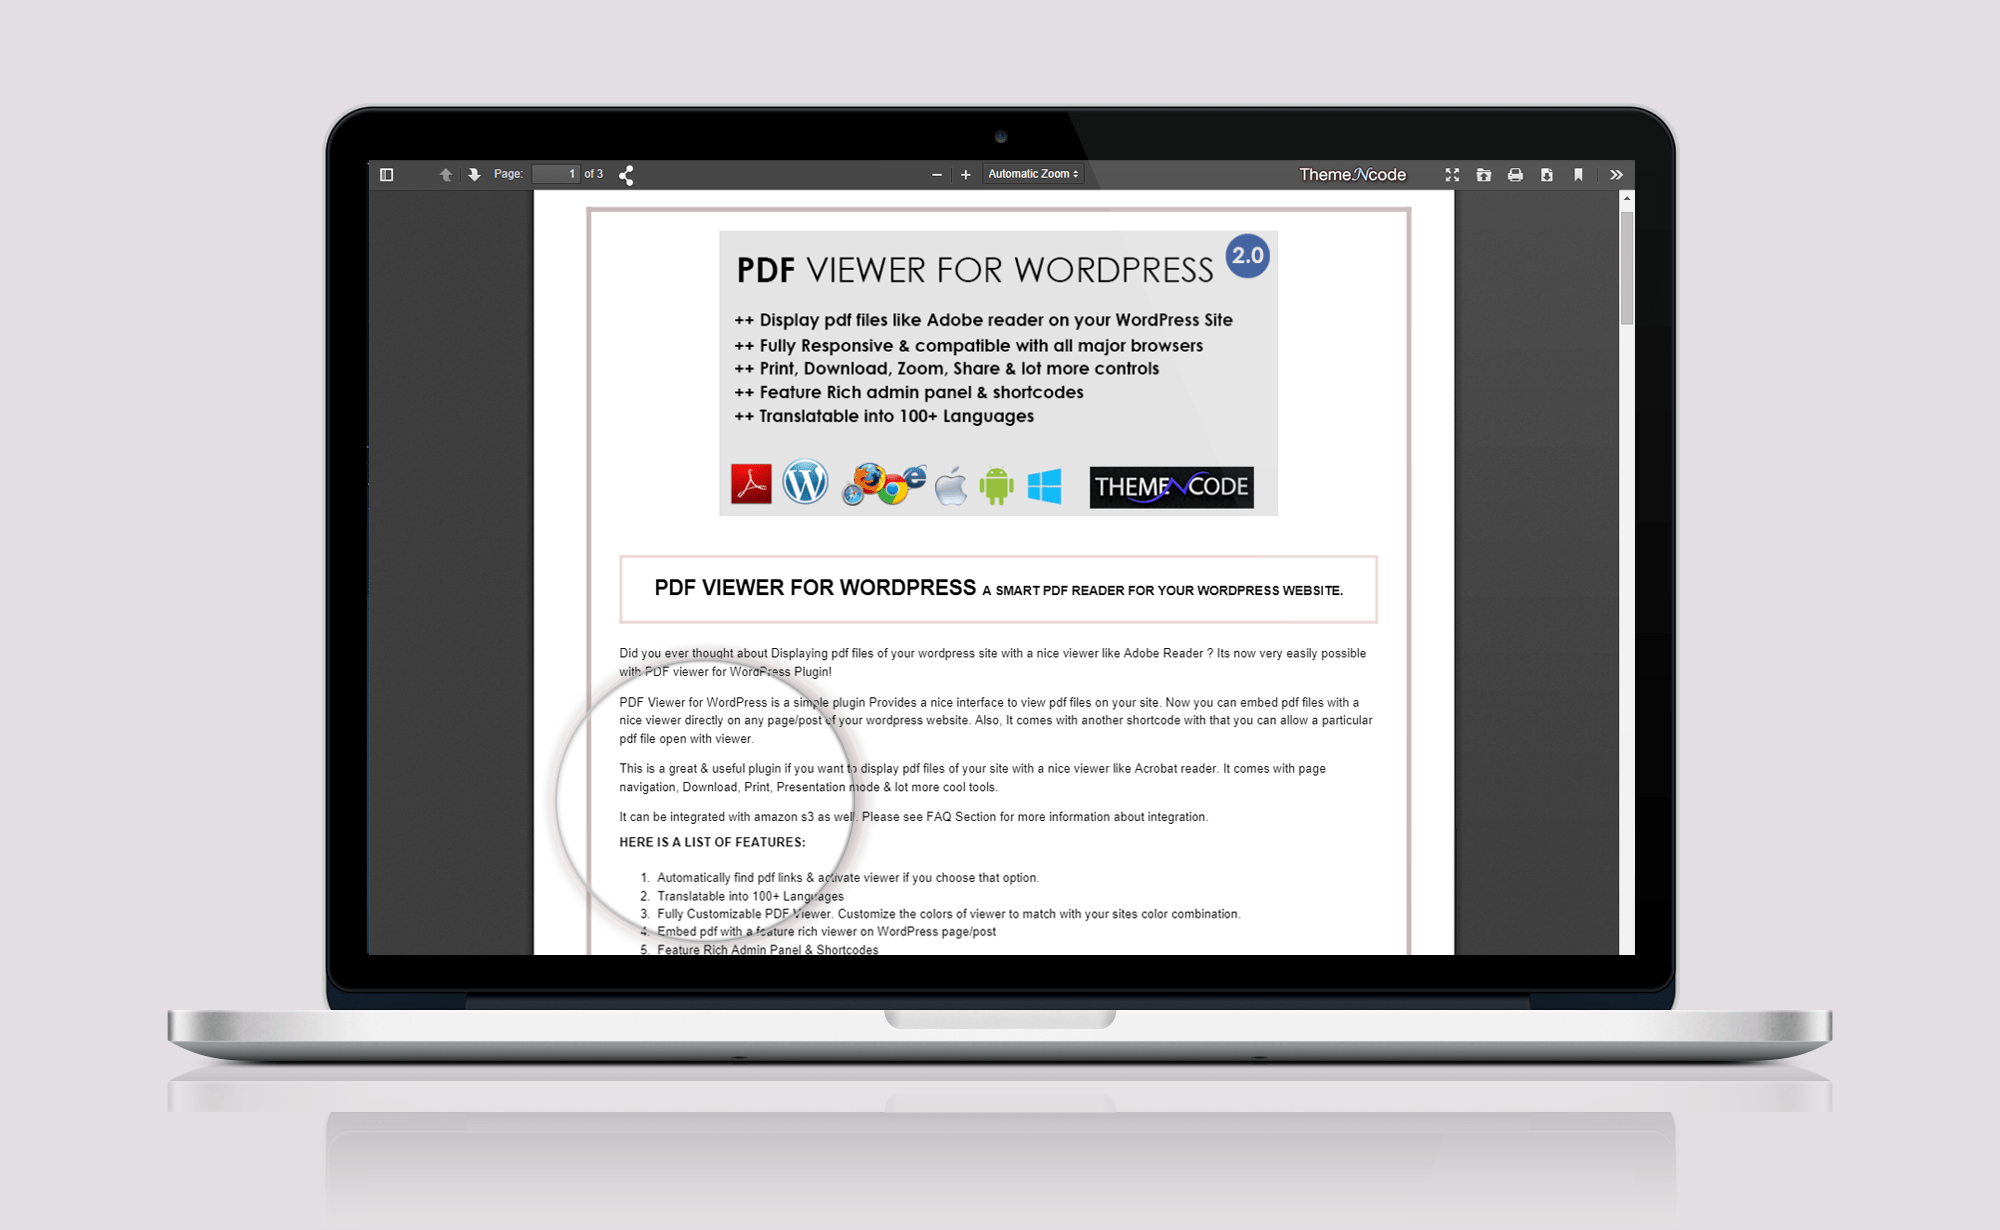 ThemeNcode launches PDF Viewer for WordPress on CodeCanyon